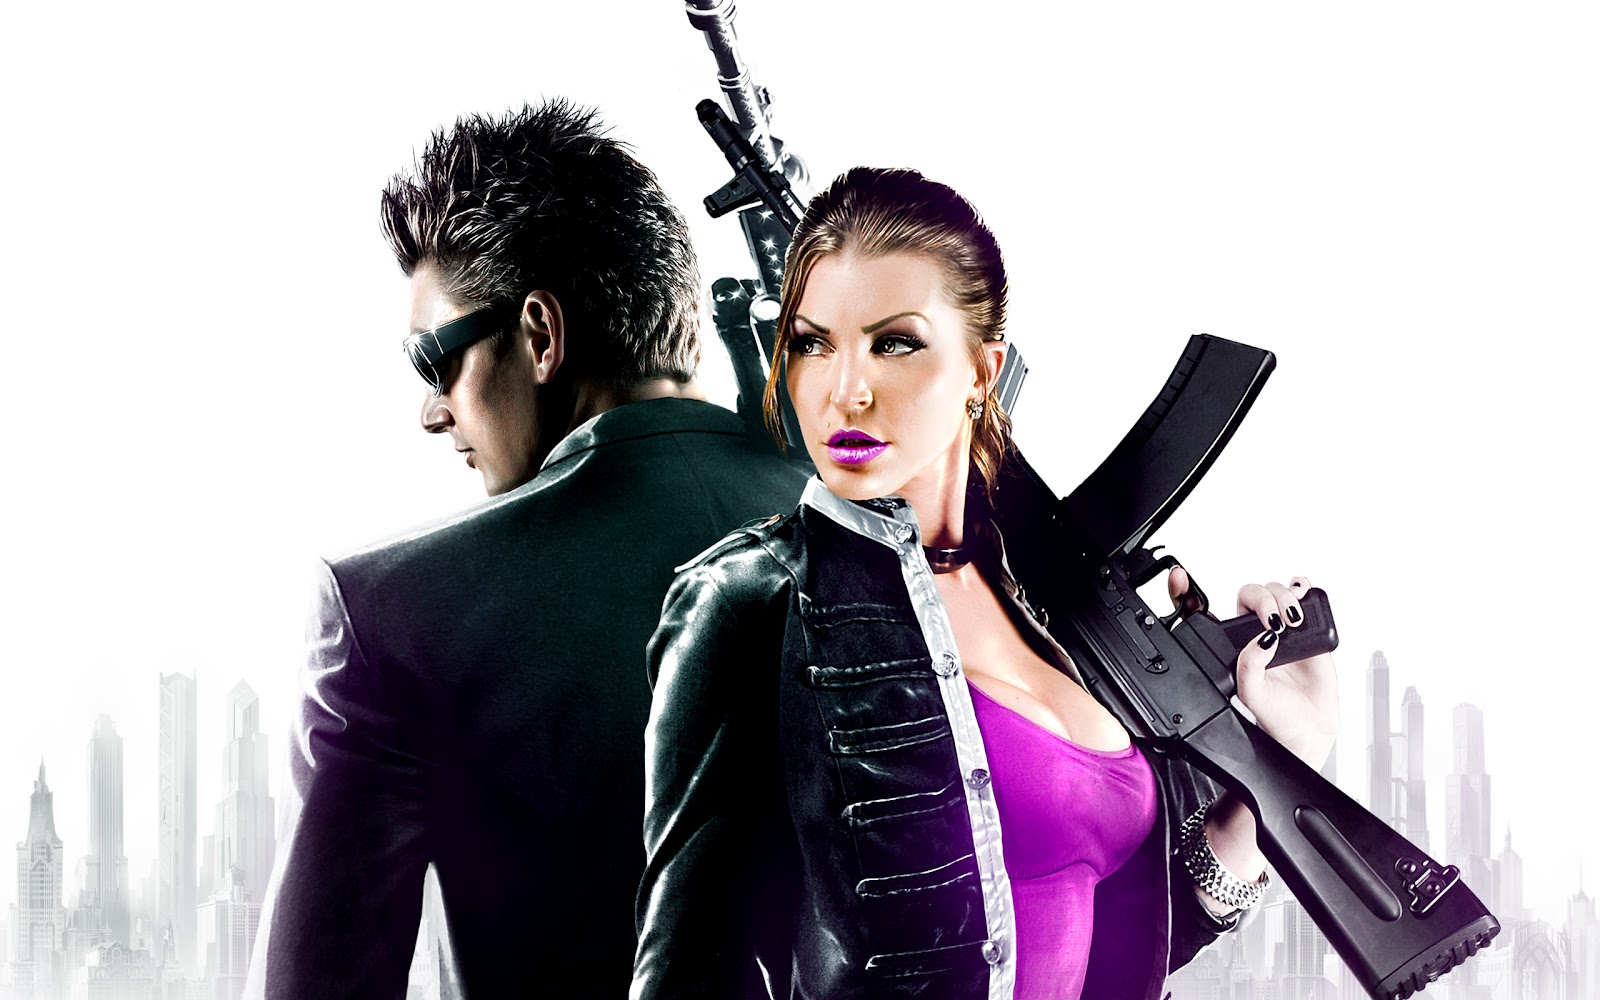 Saints-Row-The-Third-Wallpaper-4f0b53eb8